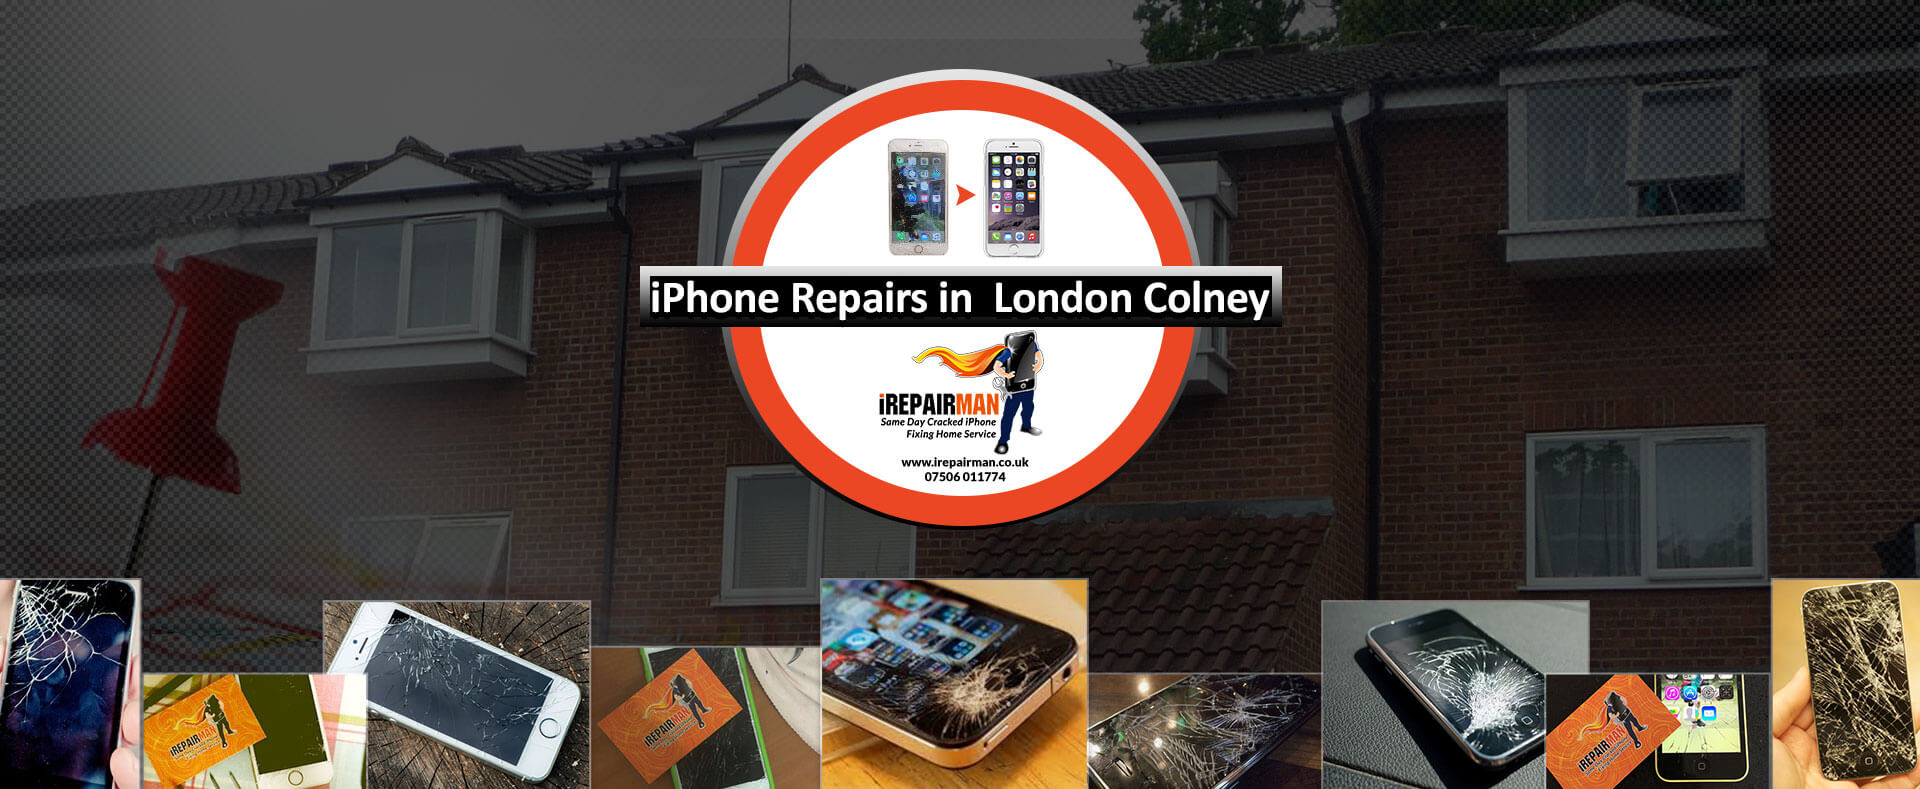 iPhone Repairs in London Colney